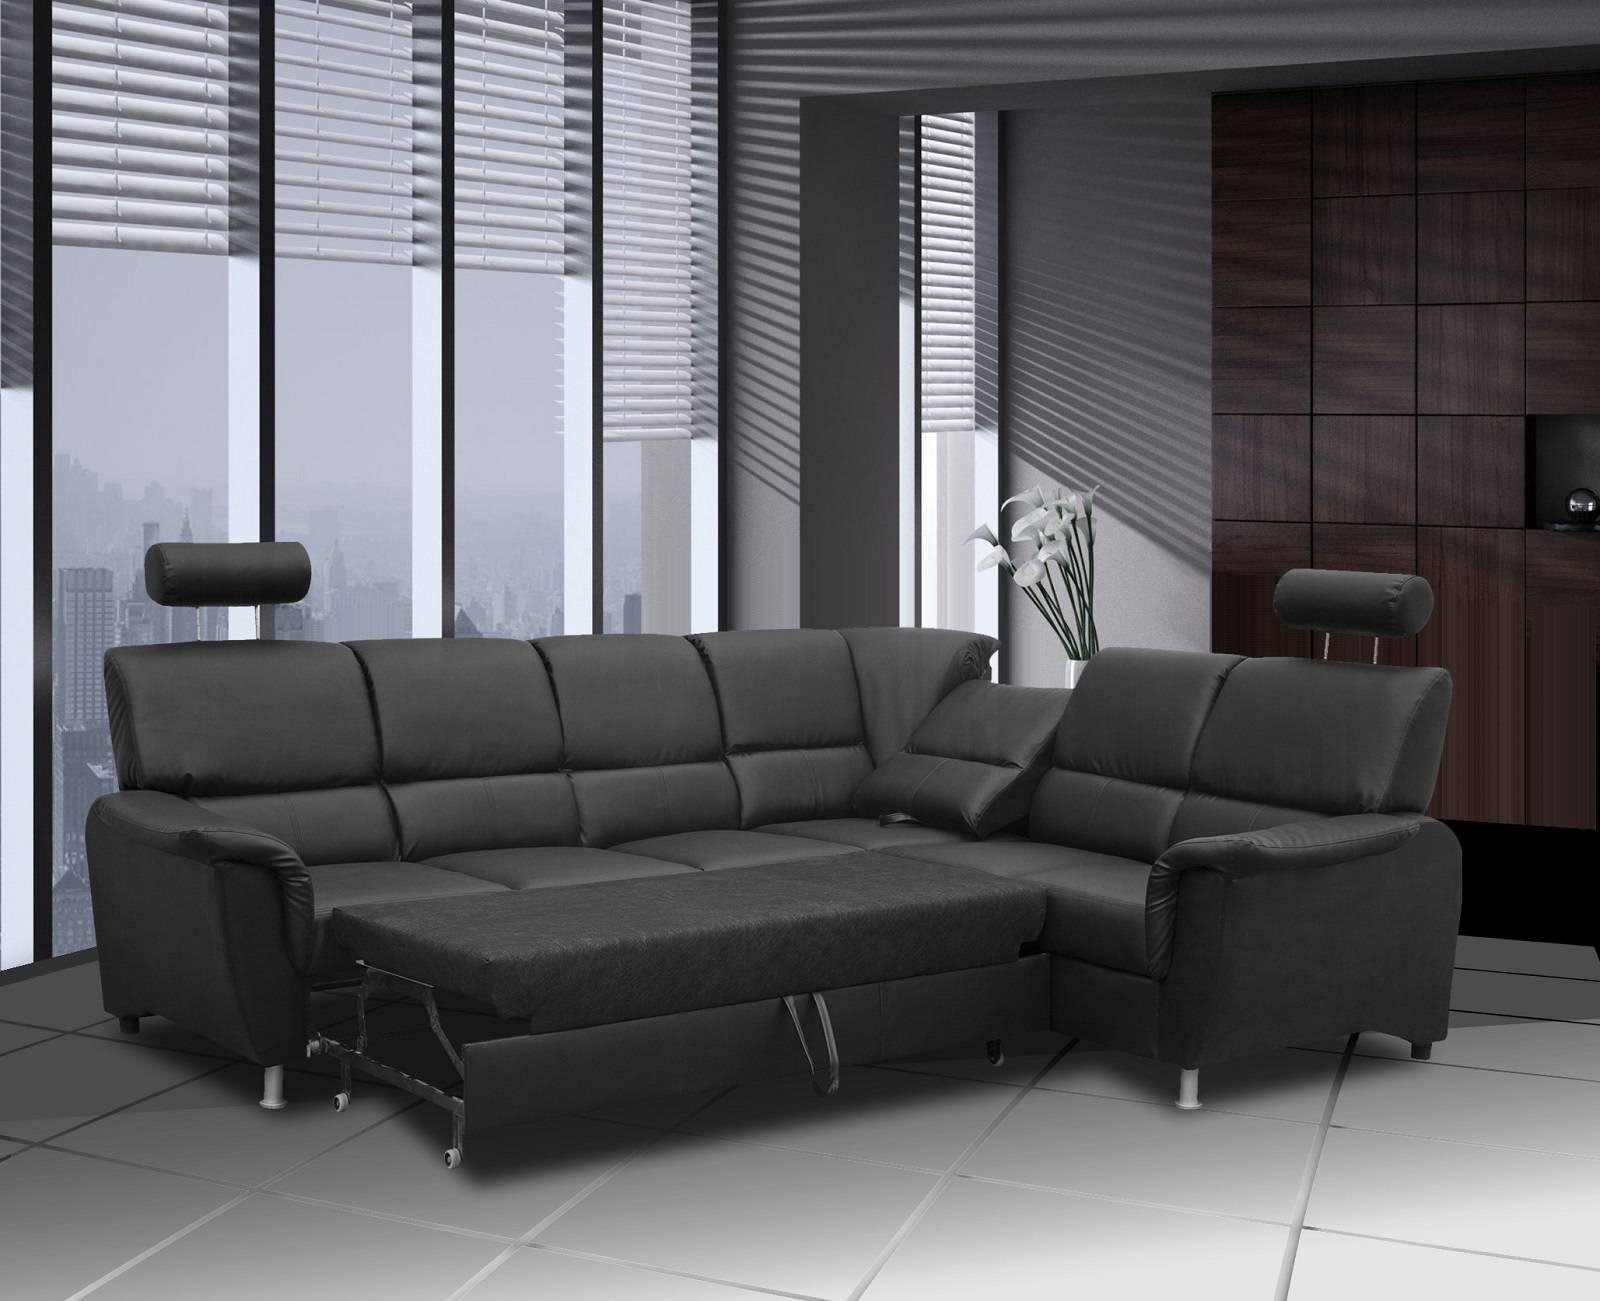 Slipcovers For Sectional Sofas With Chaise | Best Home Furniture Regarding Sectional Sofa San Diego (View 23 of 30)